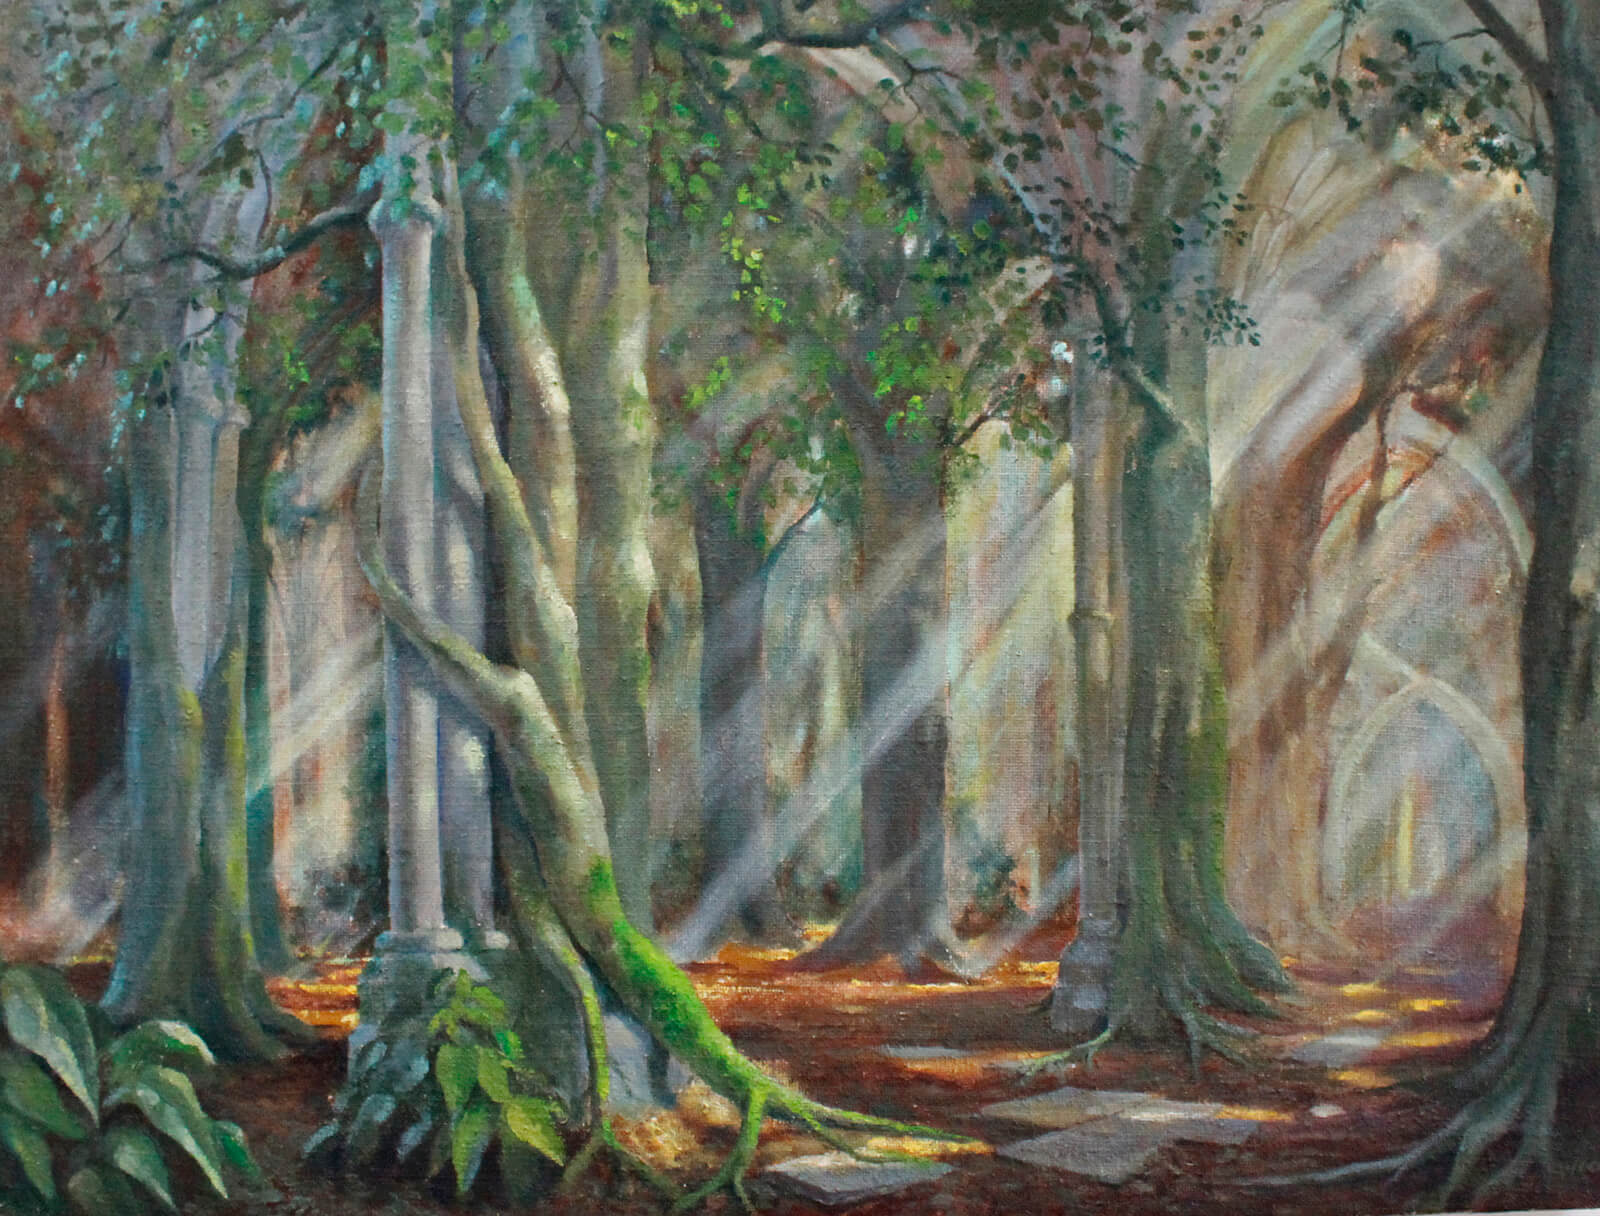 Cathedral forest artwork